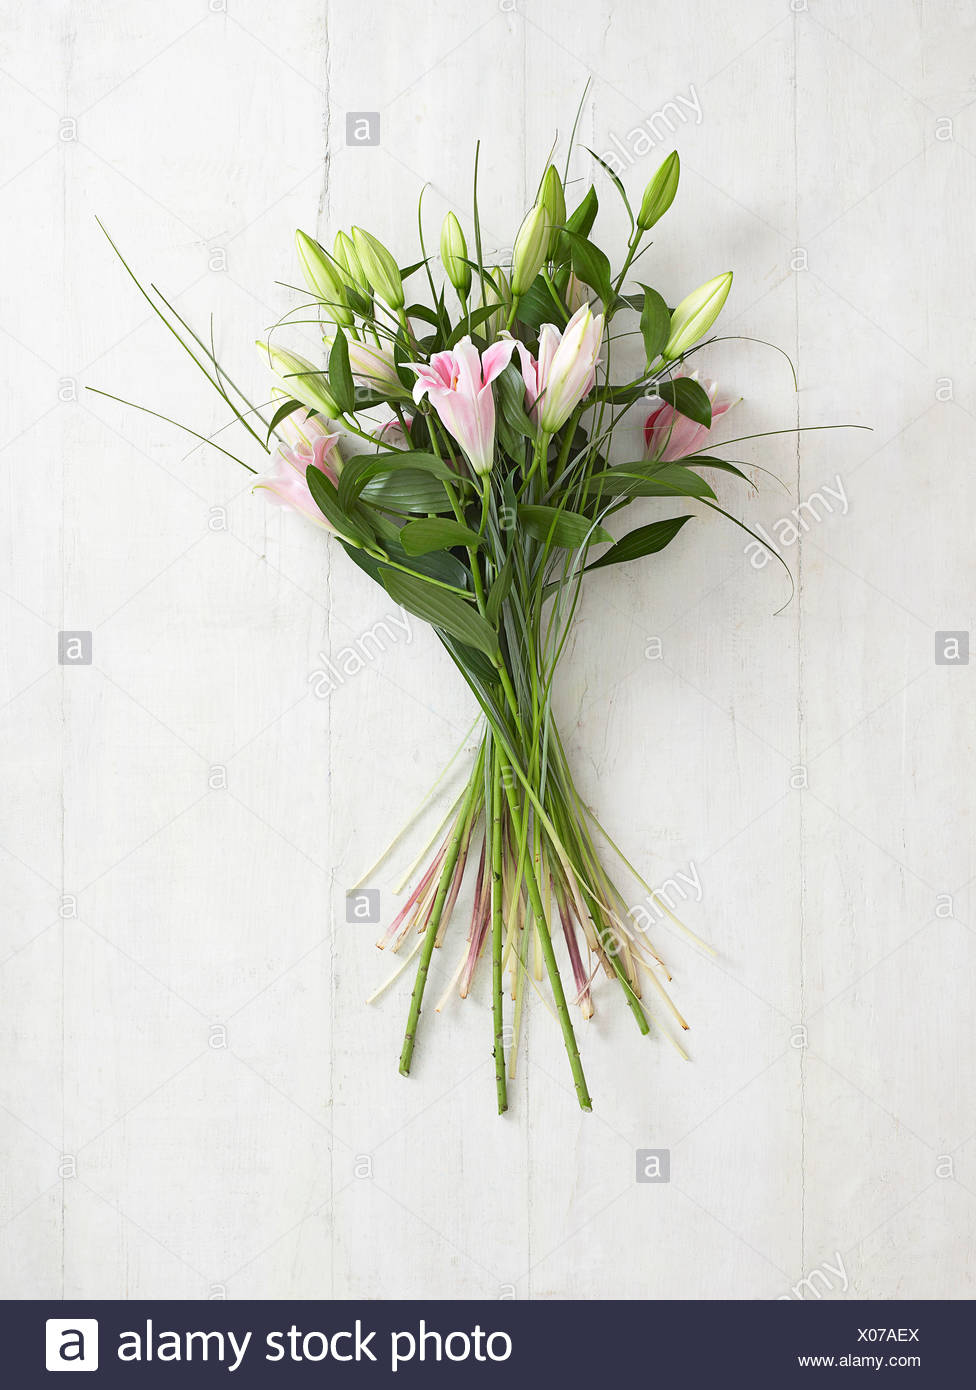 Bunch Of Lilies Close Up Stock Photo 275527810 Alamy